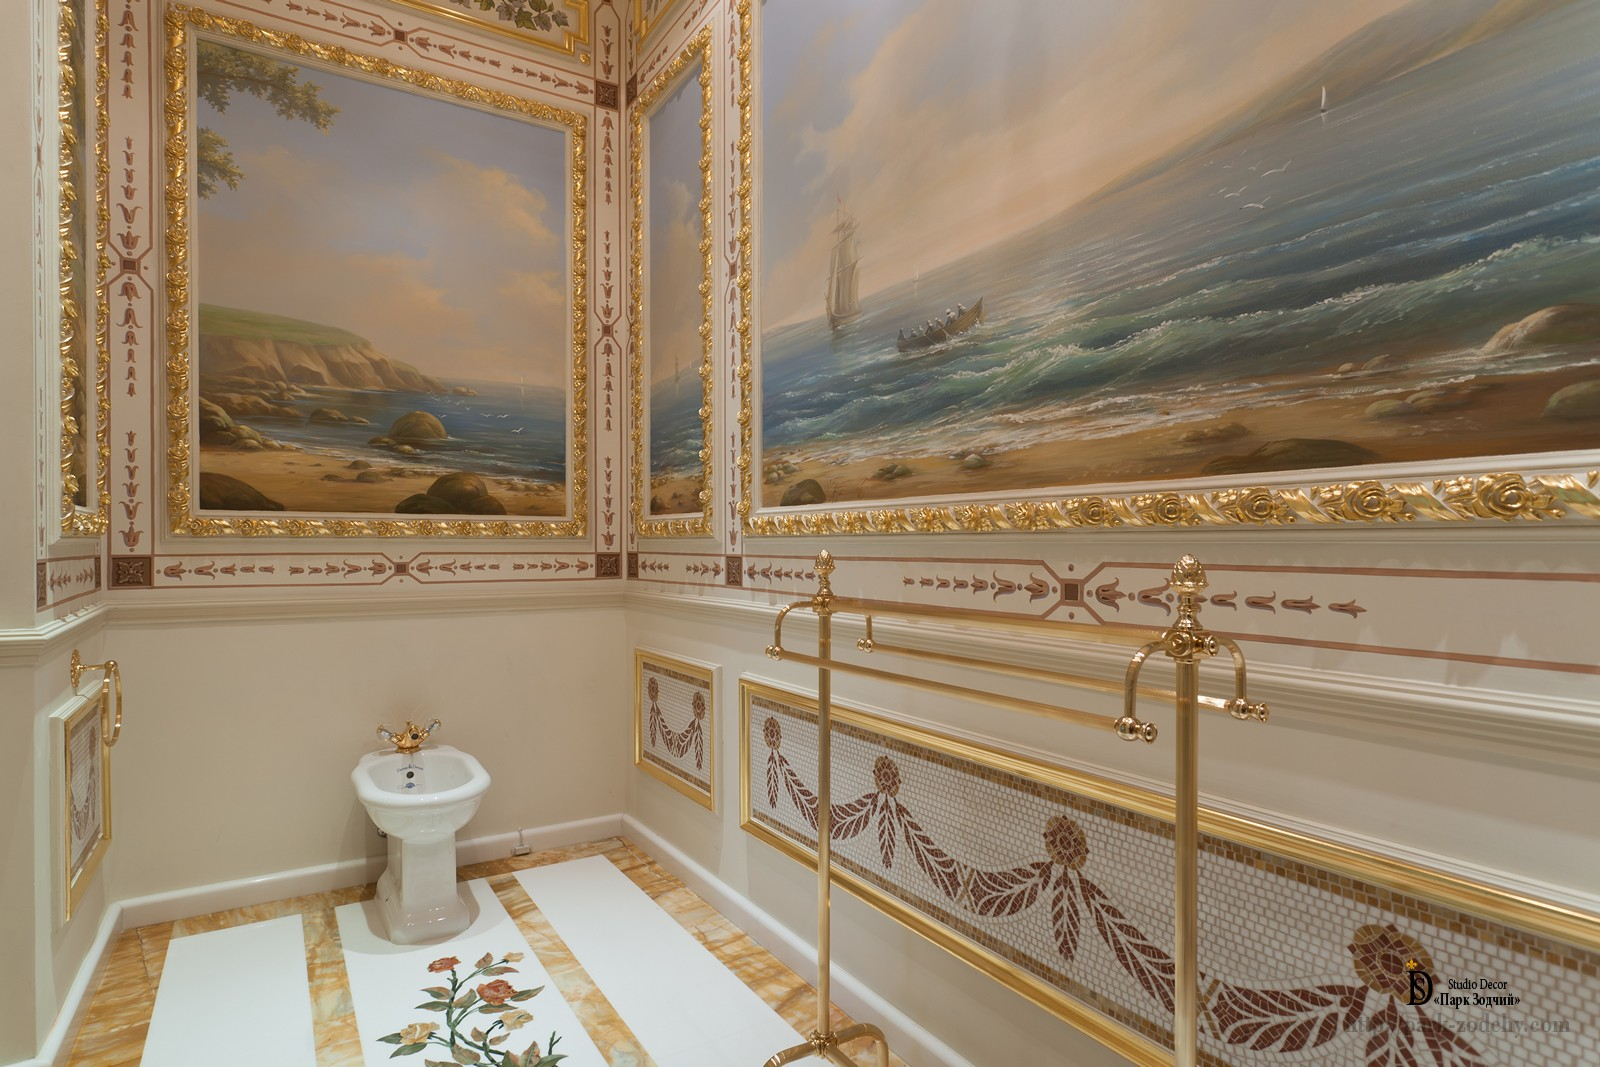 Bathroom with painted and gilded stucco